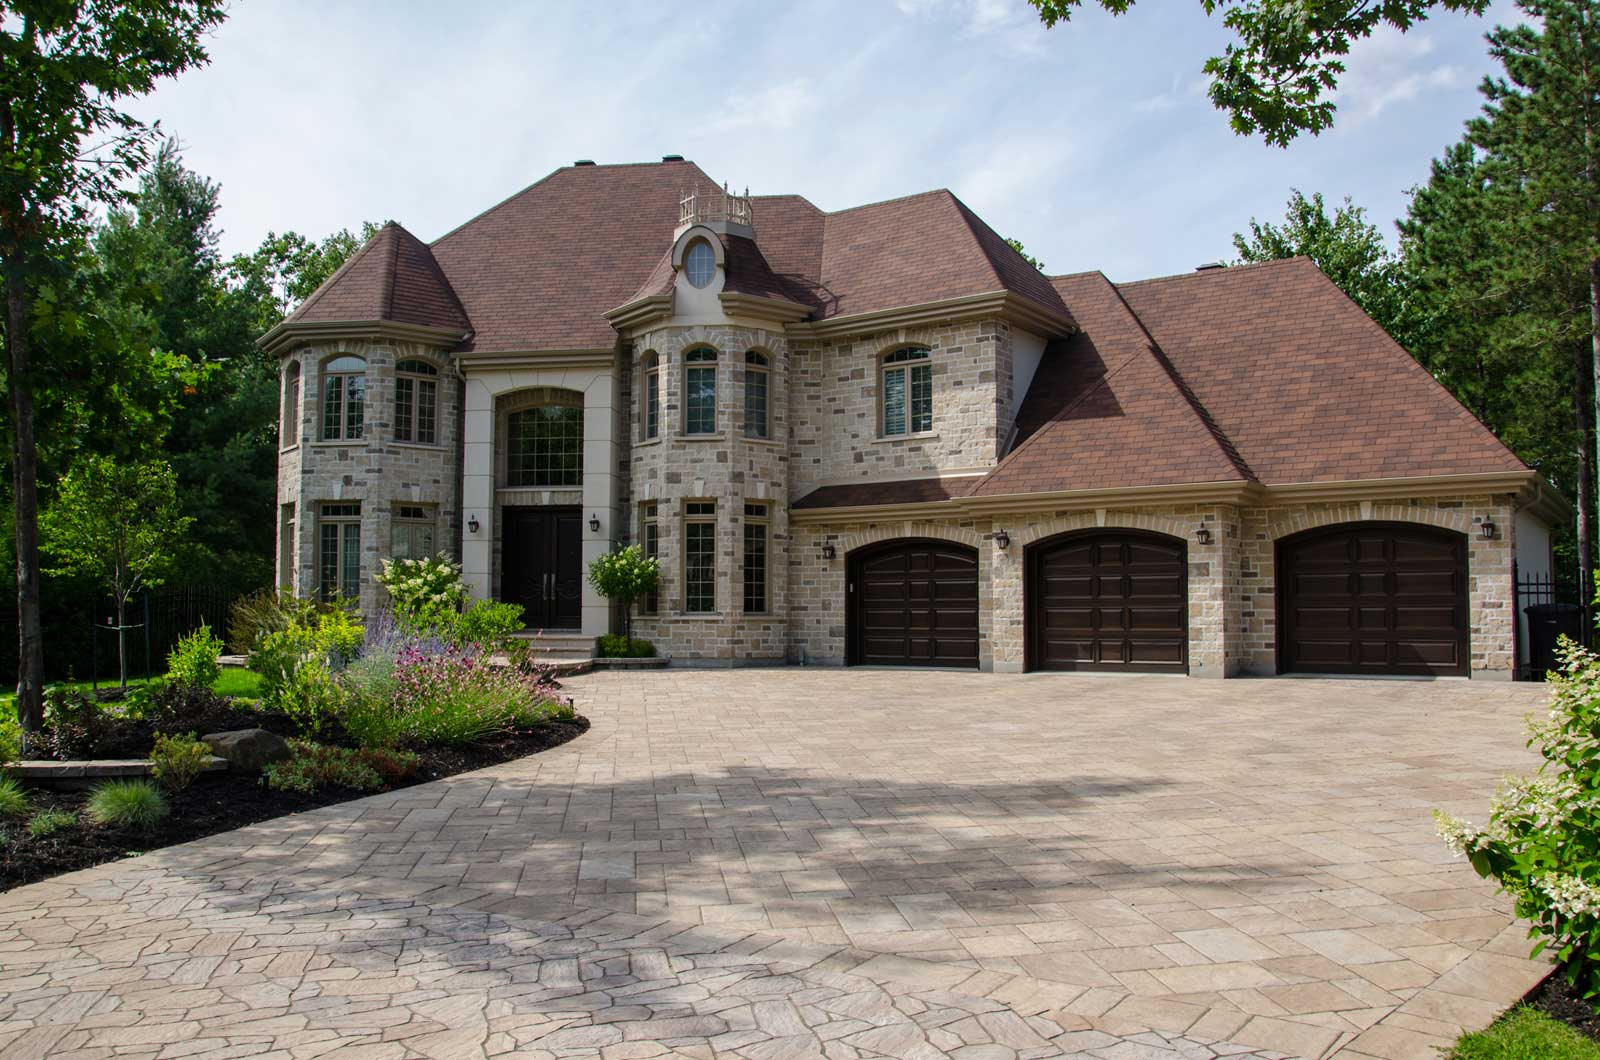 Mclean julia avent for Cost to build a house in northern virginia